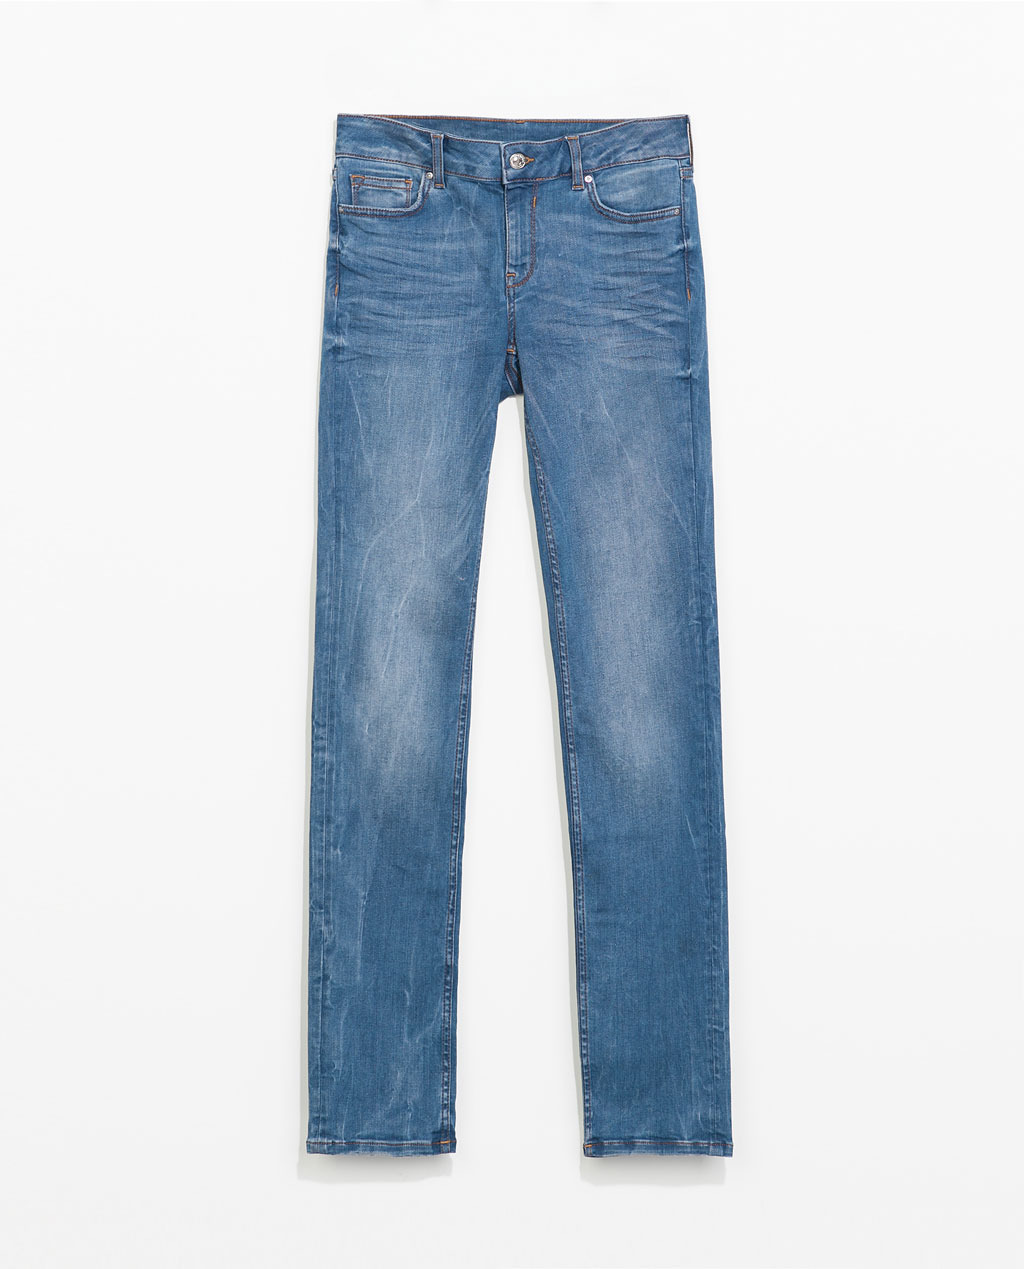 Straight Leg Jeans - style: straight leg; length: standard; pattern: plain; pocket detail: traditional 5 pocket; waist: mid/regular rise; predominant colour: denim; occasions: casual, creative work; fibres: cotton - stretch; jeans detail: shading down centre of thigh; texture group: denim; pattern type: fabric; season: s/s 2014